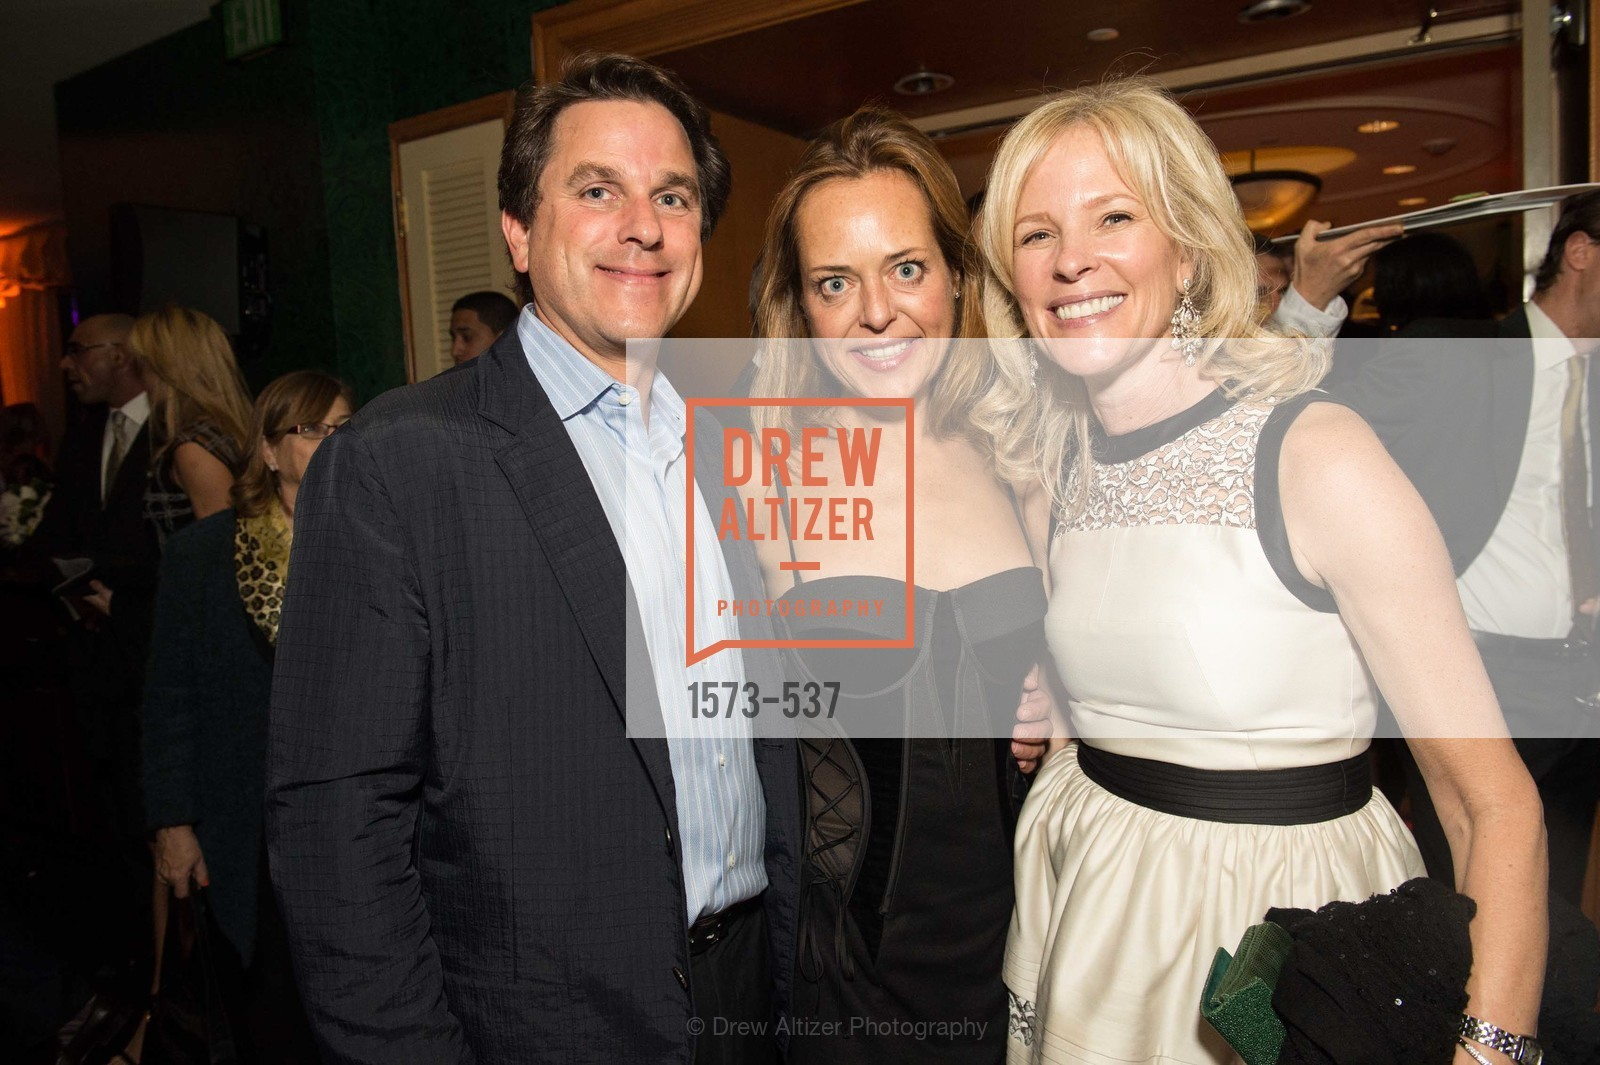 Gregory Malin, Charlot Malin, Kerri Lehmann, TOP OF THE MARK'S 75TH Anniversary Party, US, November 6th, 2014,Drew Altizer, Drew Altizer Photography, full-service agency, private events, San Francisco photographer, photographer california